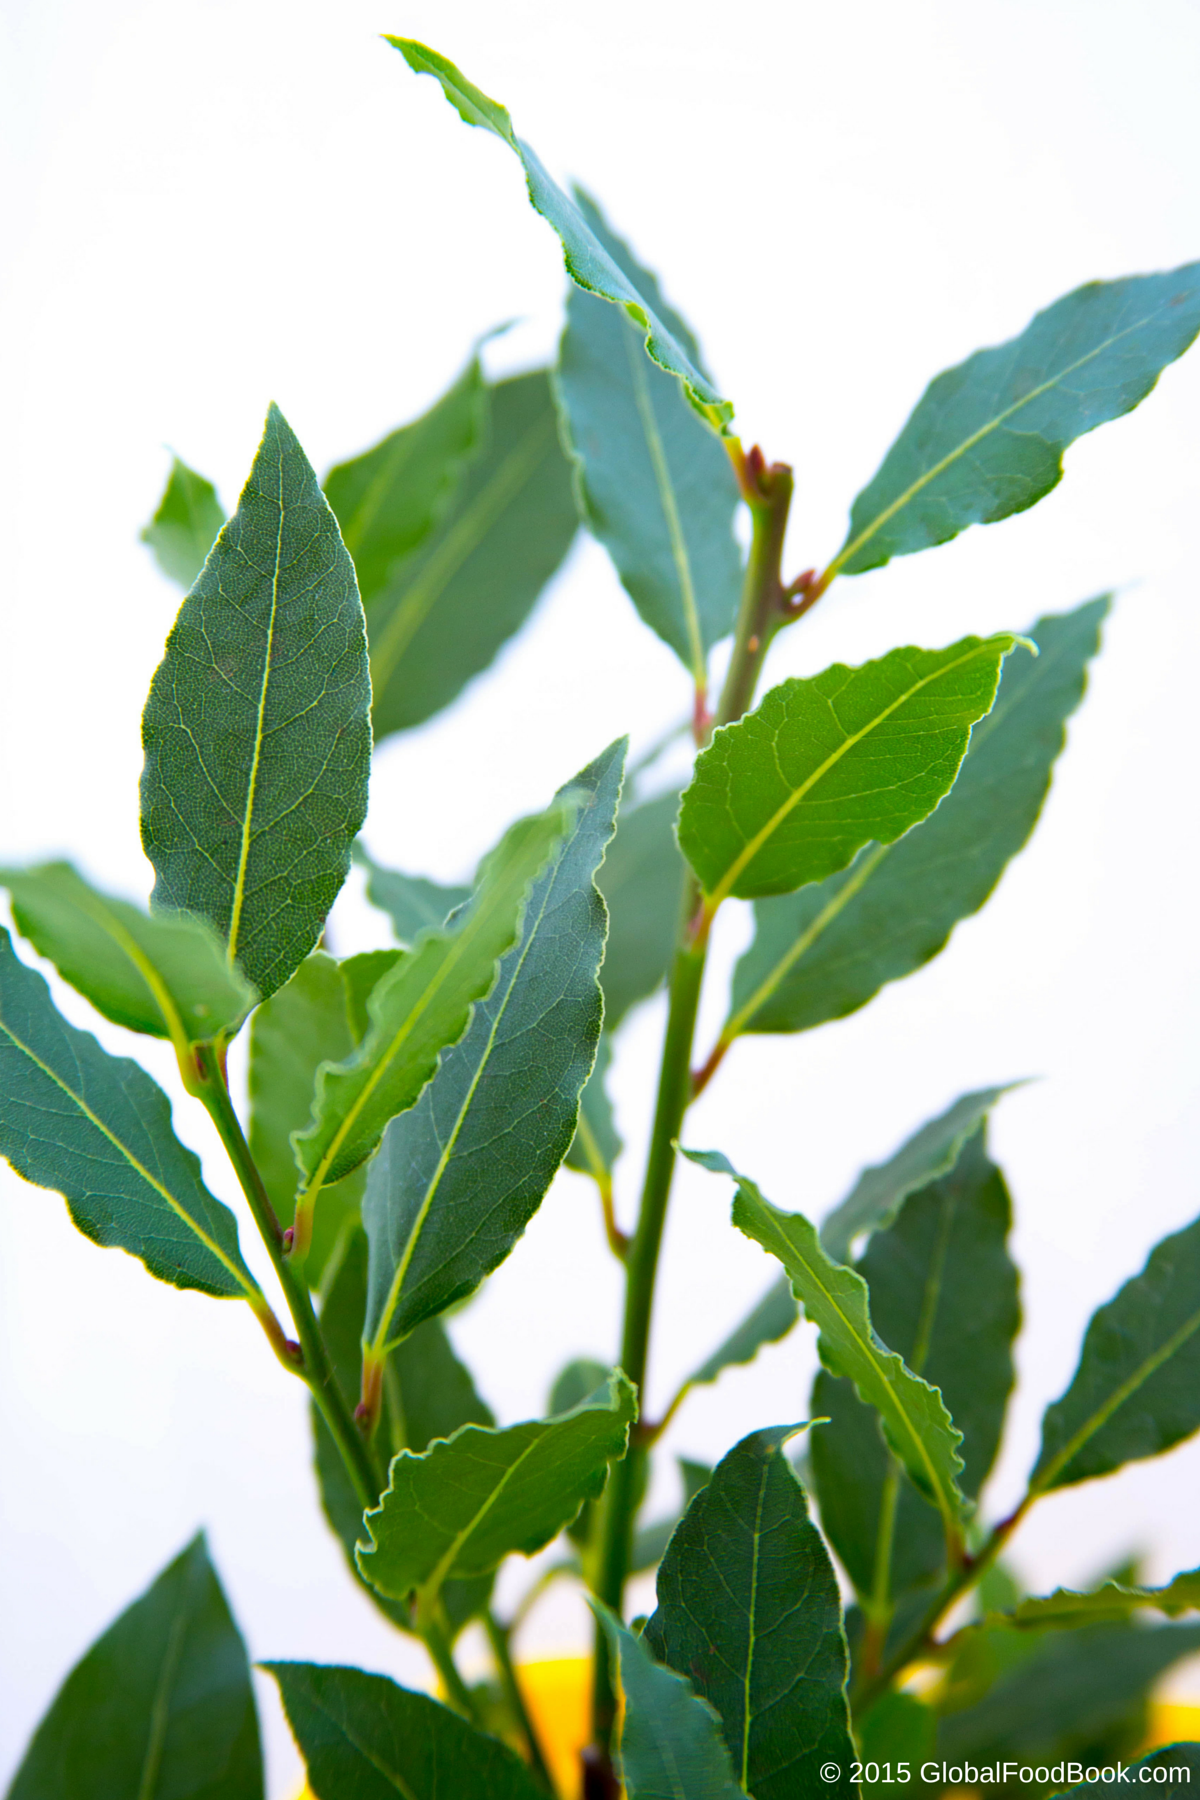 THE IMPACTS OF BAY LEAF ON HEALTH